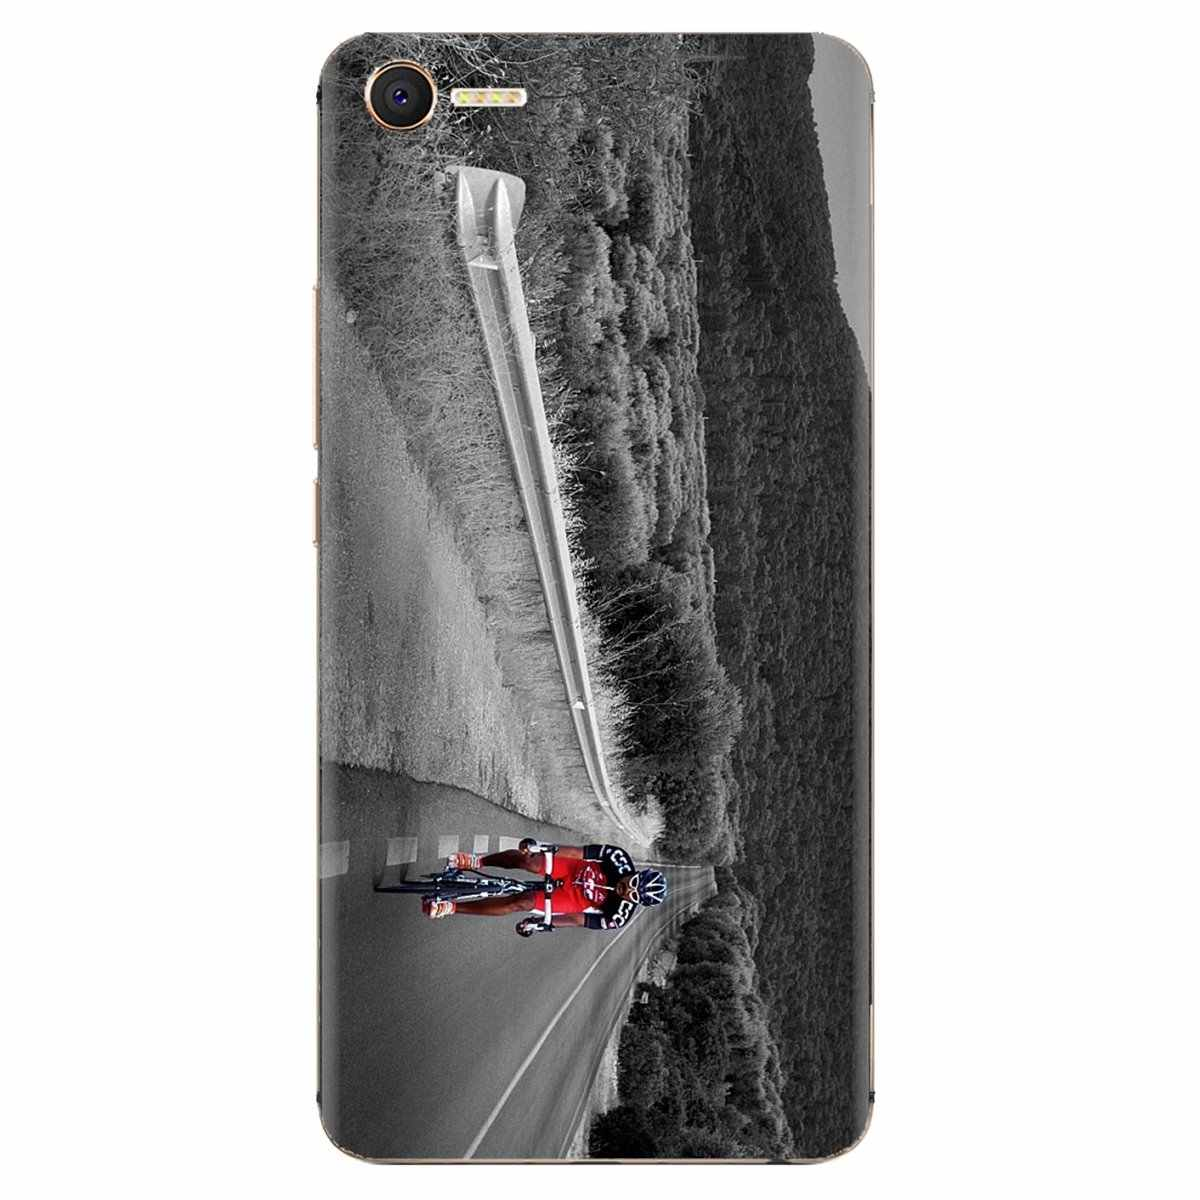 Road Biking Cycling Wallpaper For Samsung Galaxy A10 A30 A40 A50 A60 A70 S6 Active Note 10 Plus Edge M30 Silicone Phone Bag Case Fitted Cases Aliexpress